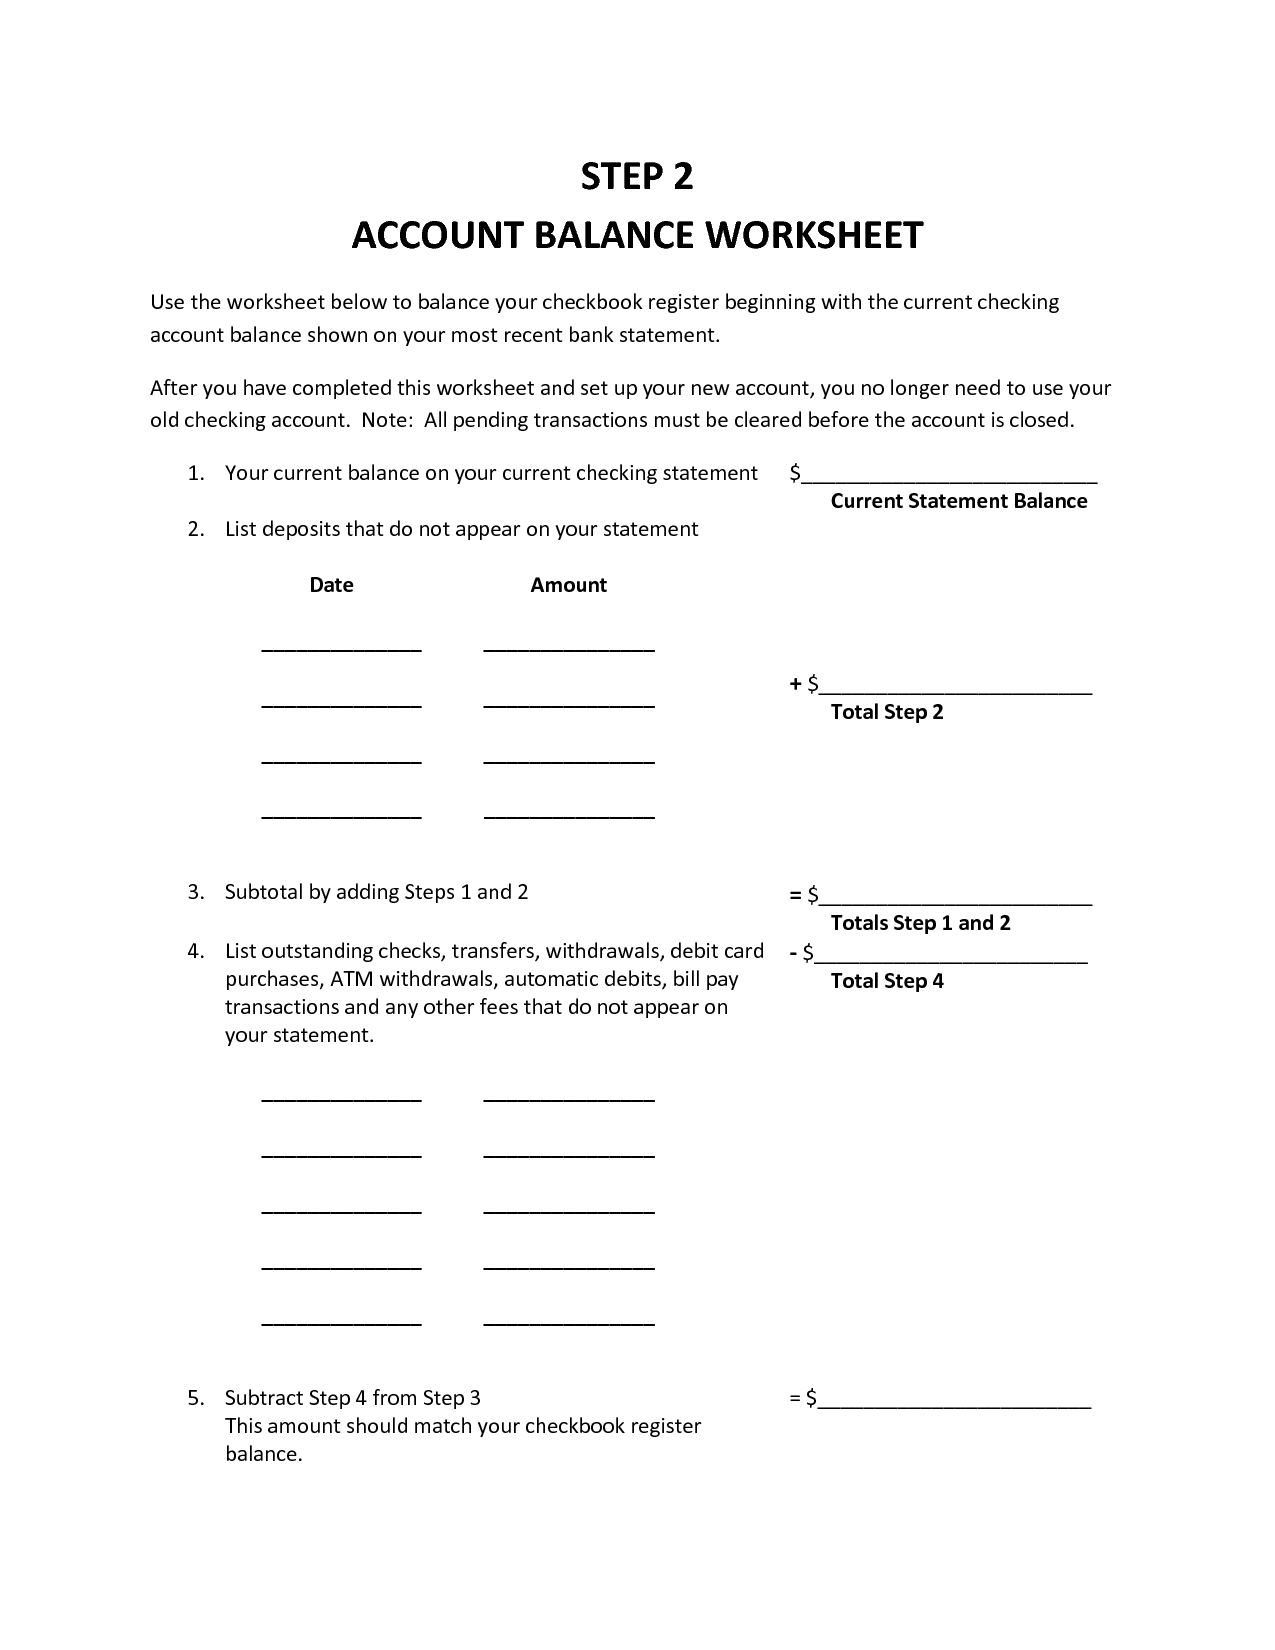 35 Balancing Your Checking Account Worksheet